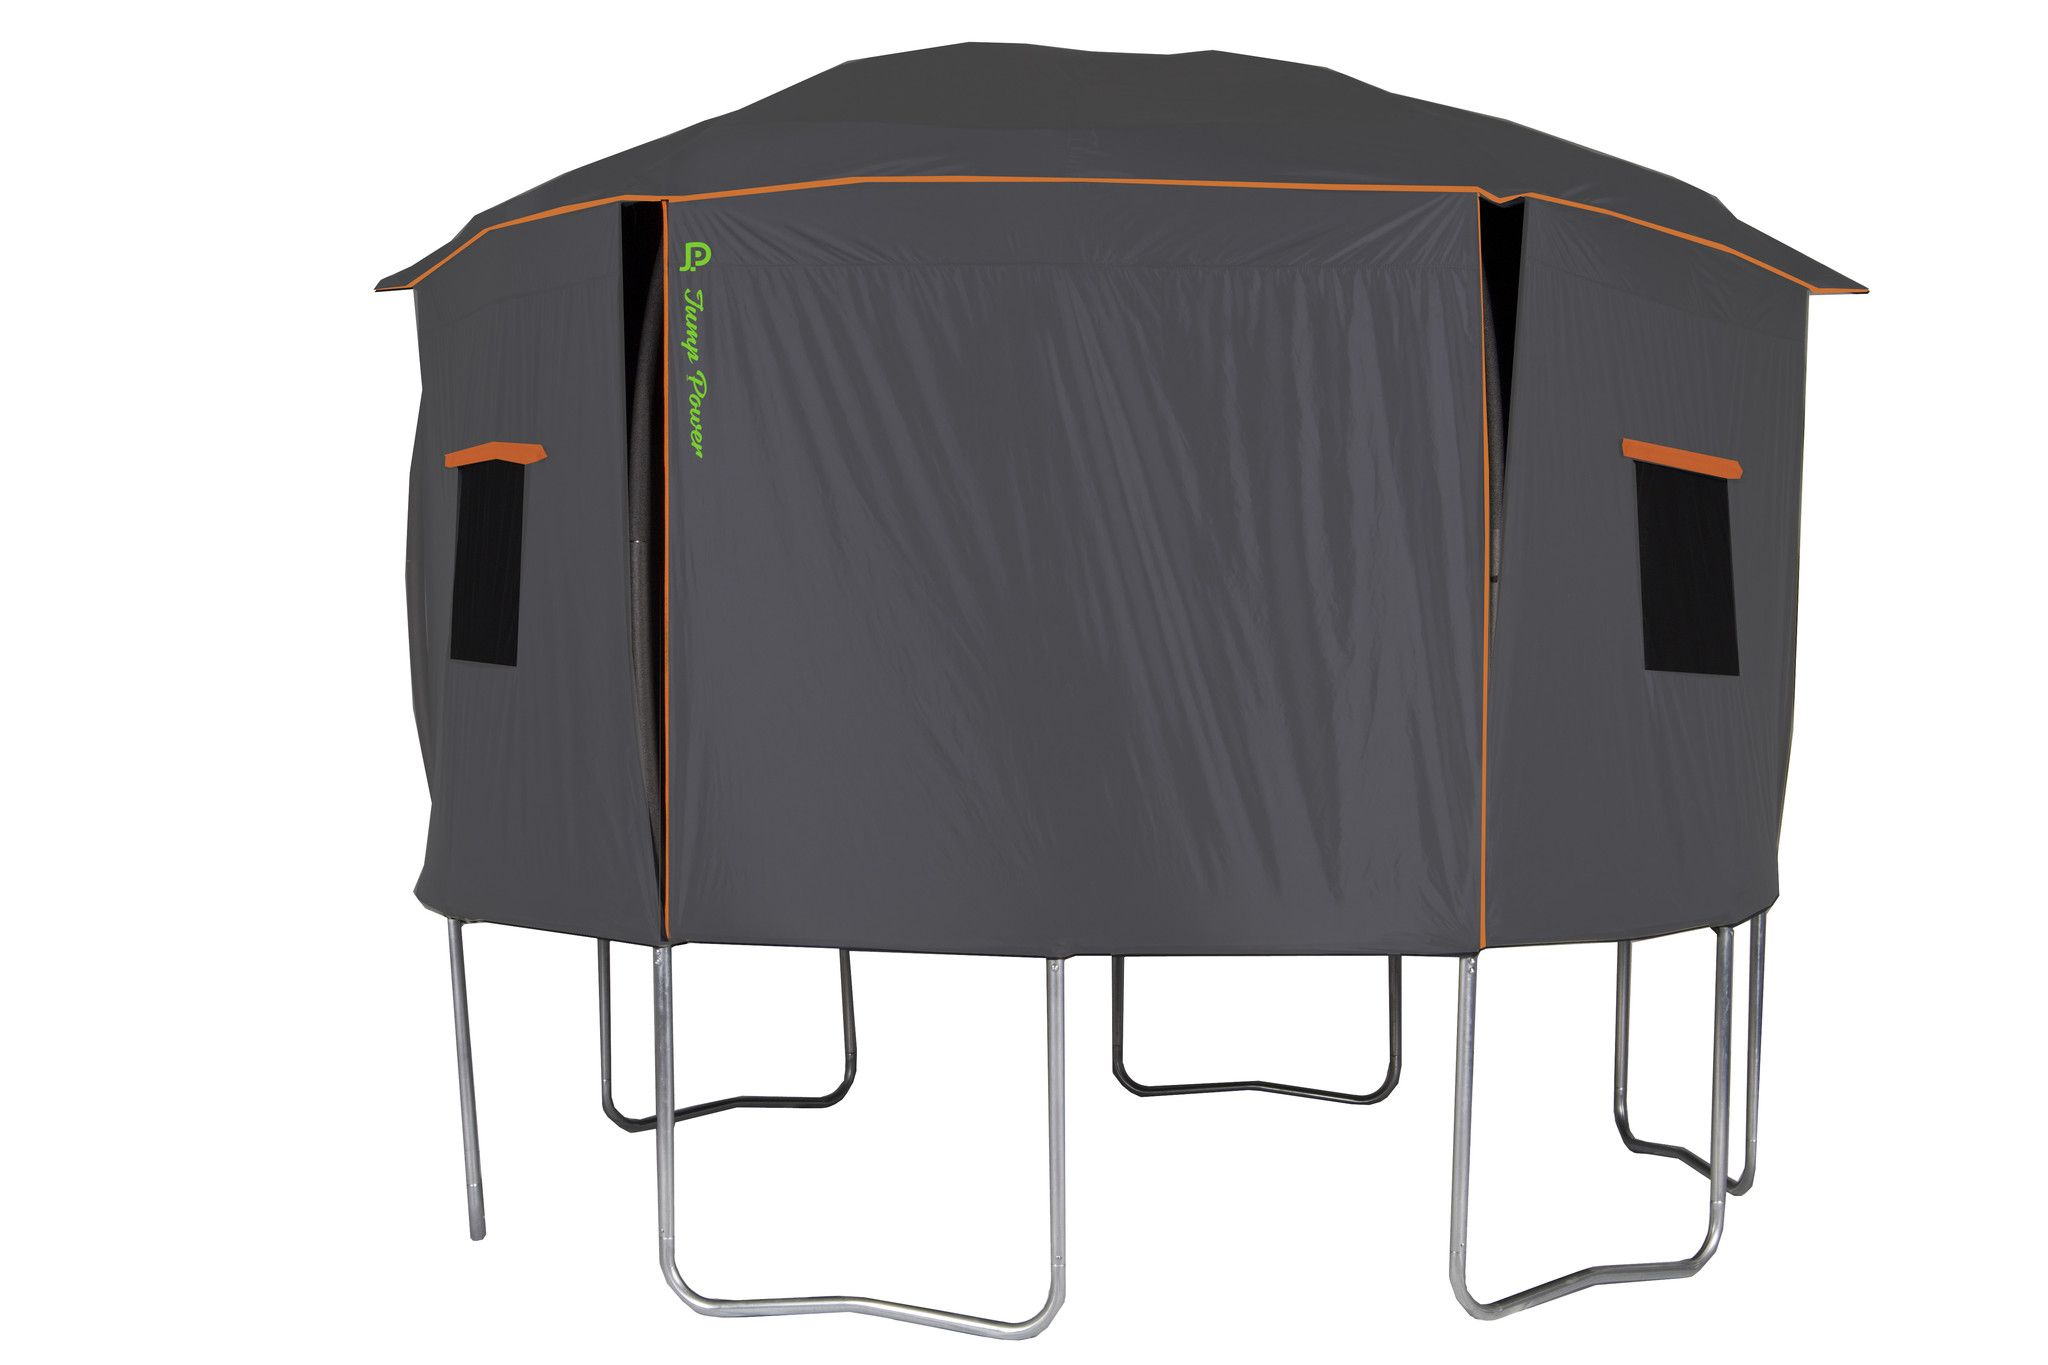 Jump Power Trampoline Tent Sizes Available 14ft Trampoline Tent Backyard Trampoline Trampoline Safety